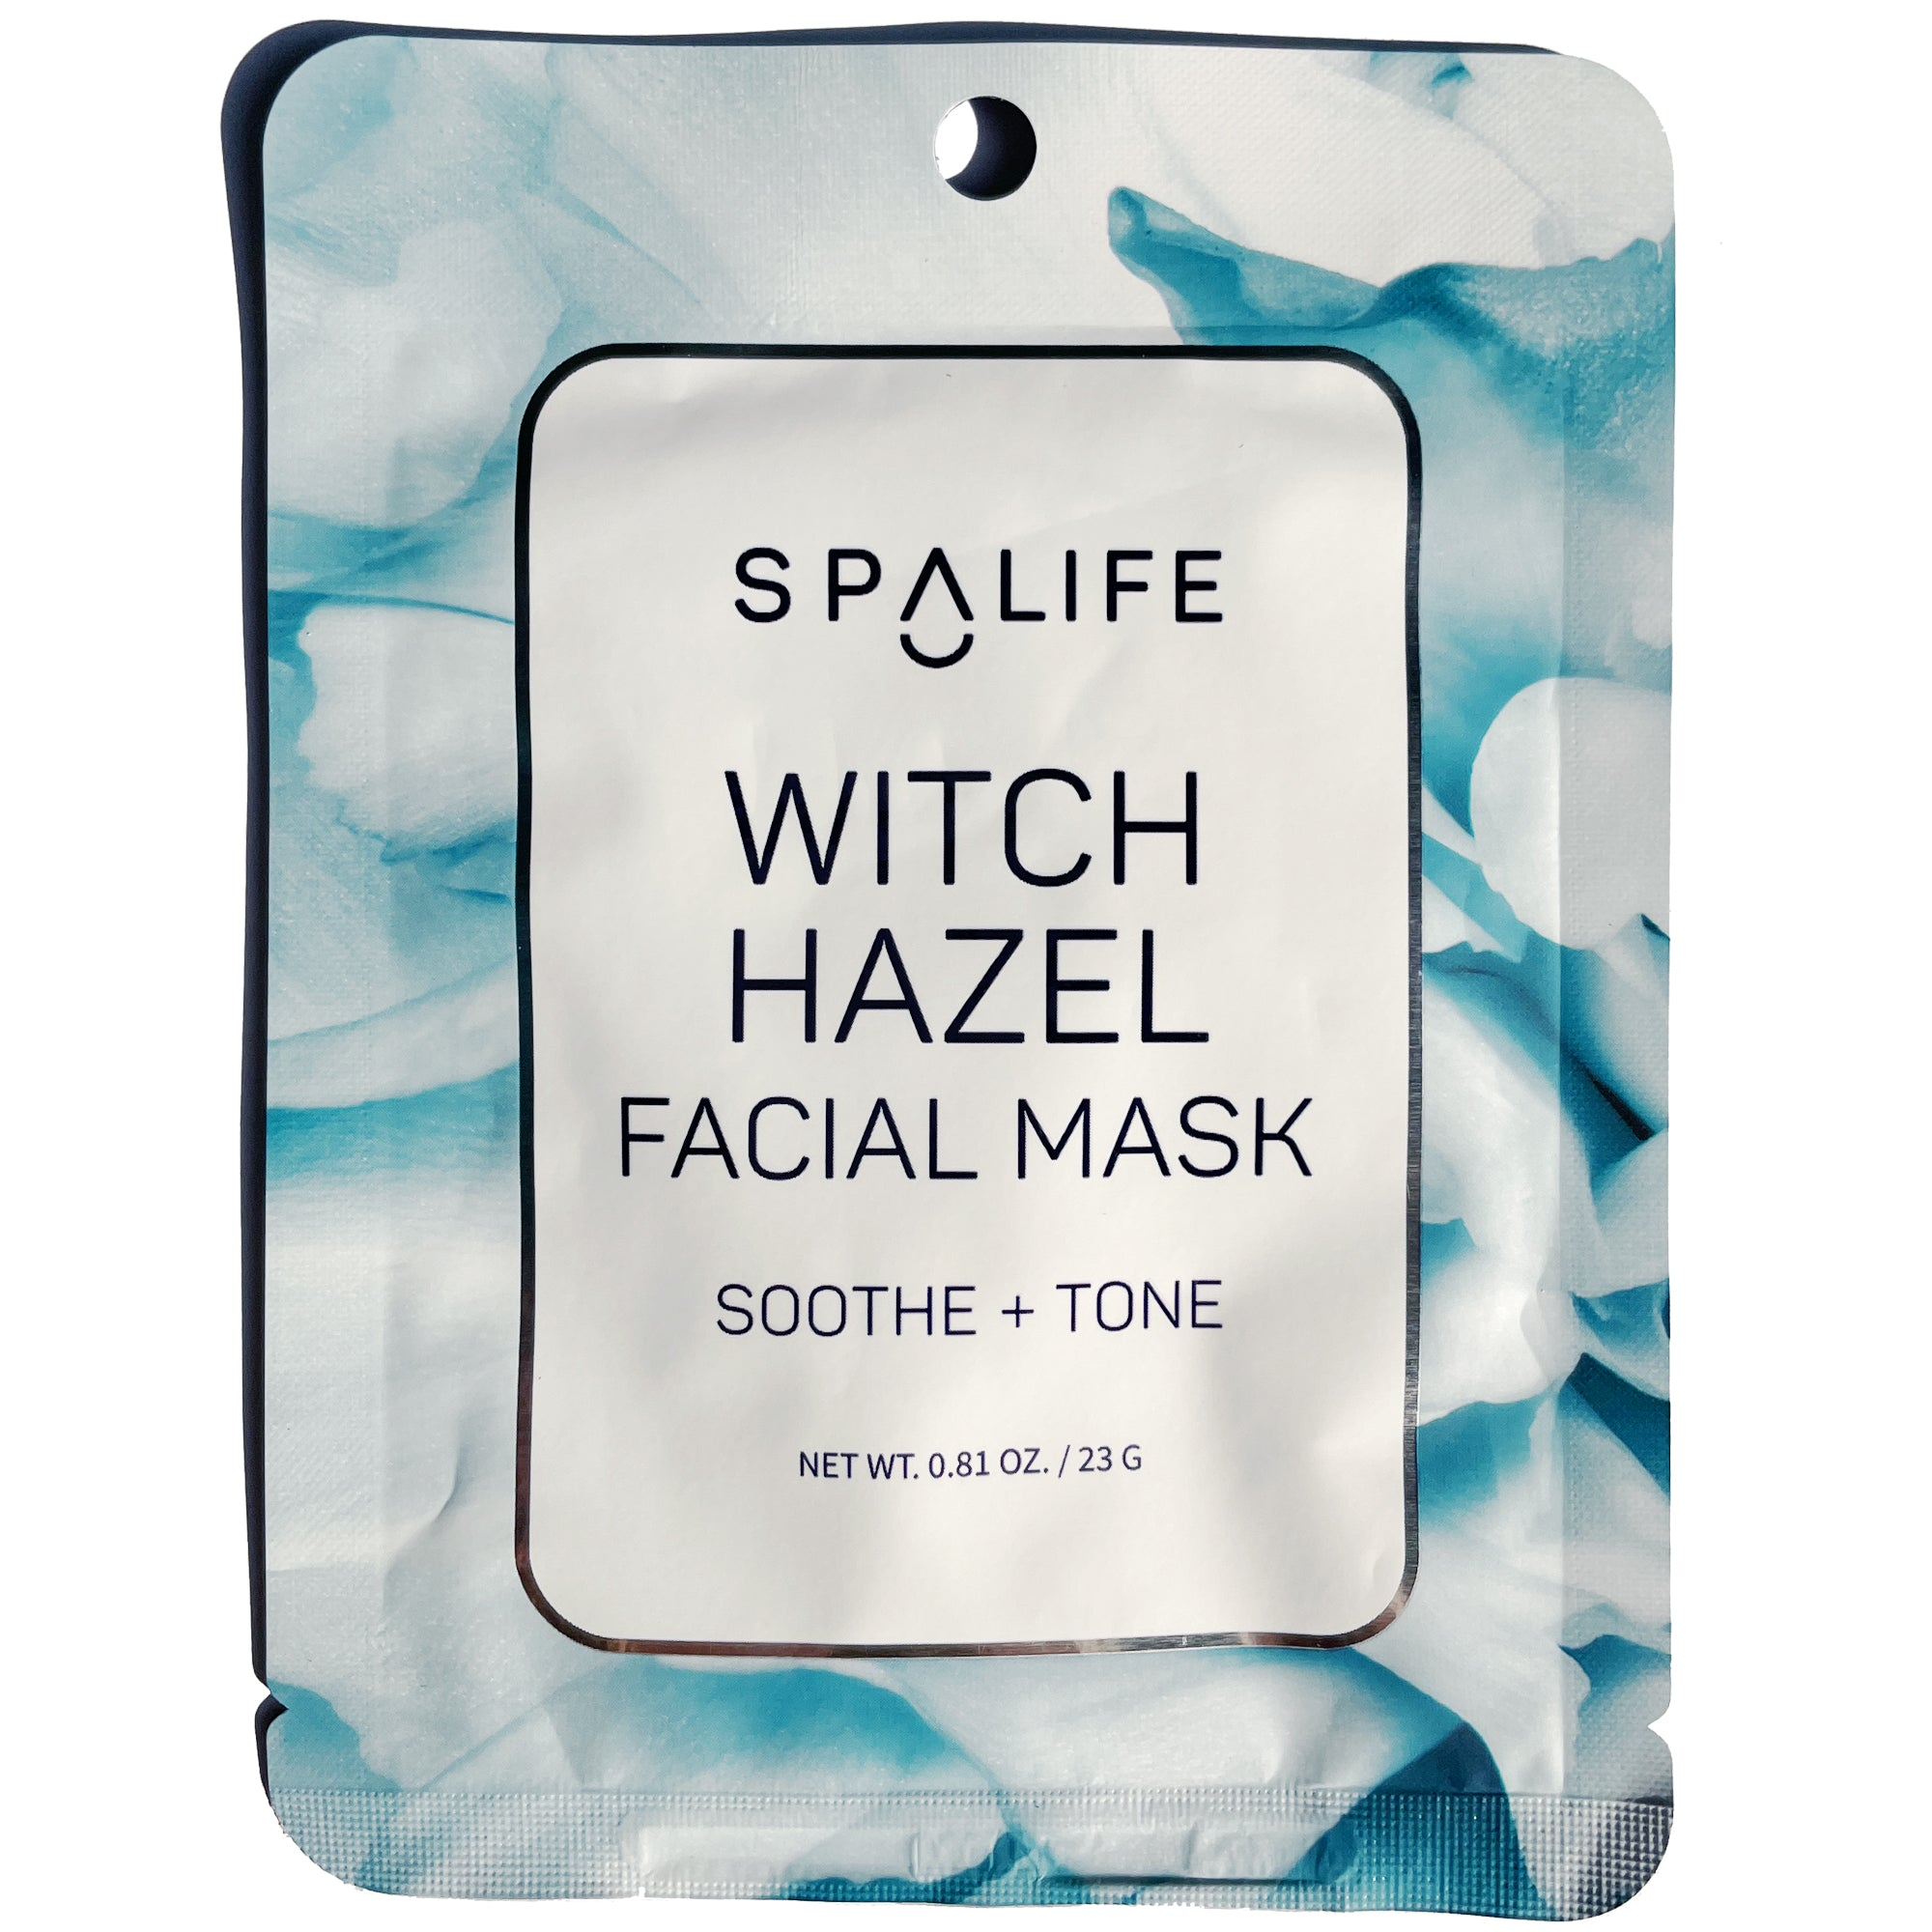 SpaLife Witch Hazel Facial Mask